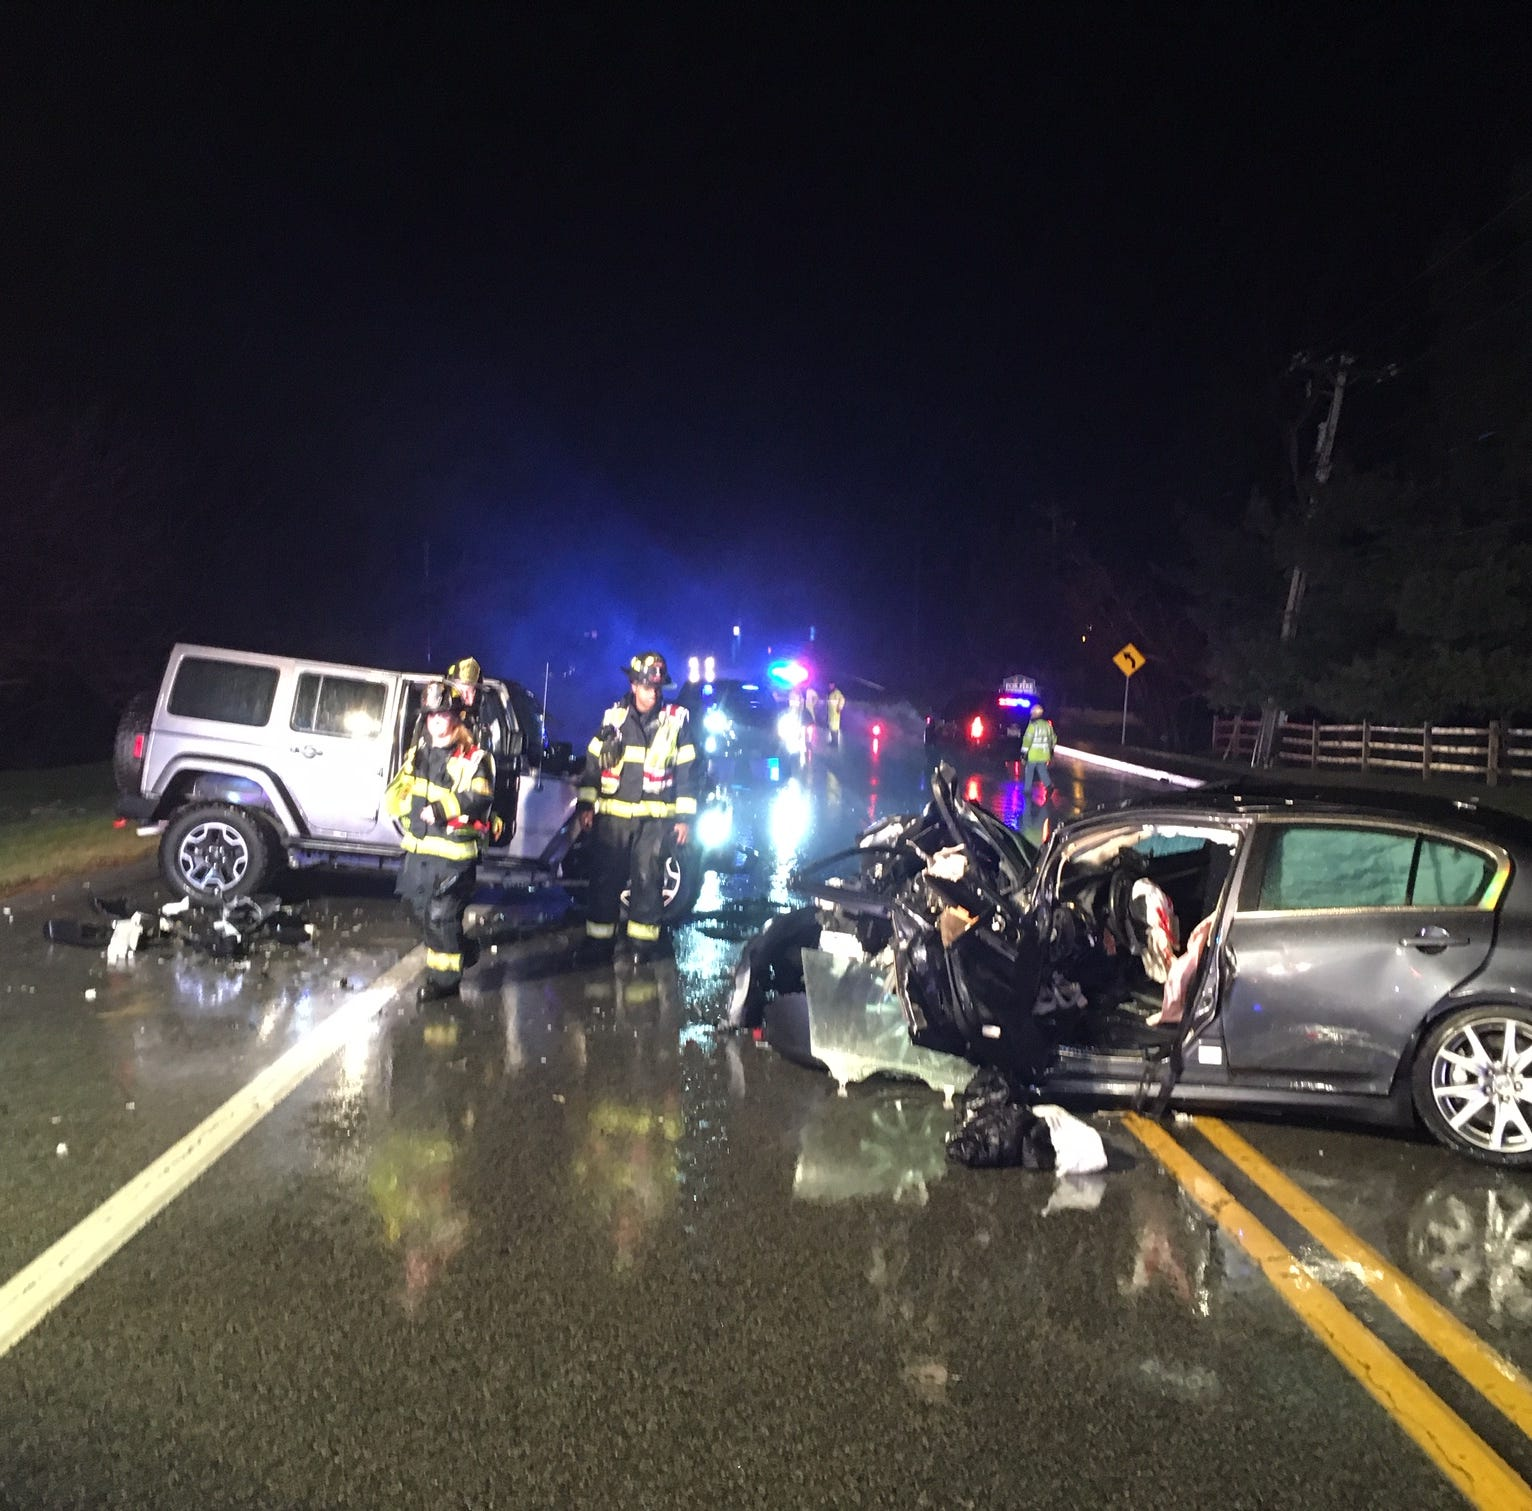 Following serious crash, Polly Drummond Hill Road in Pike Creek reopens